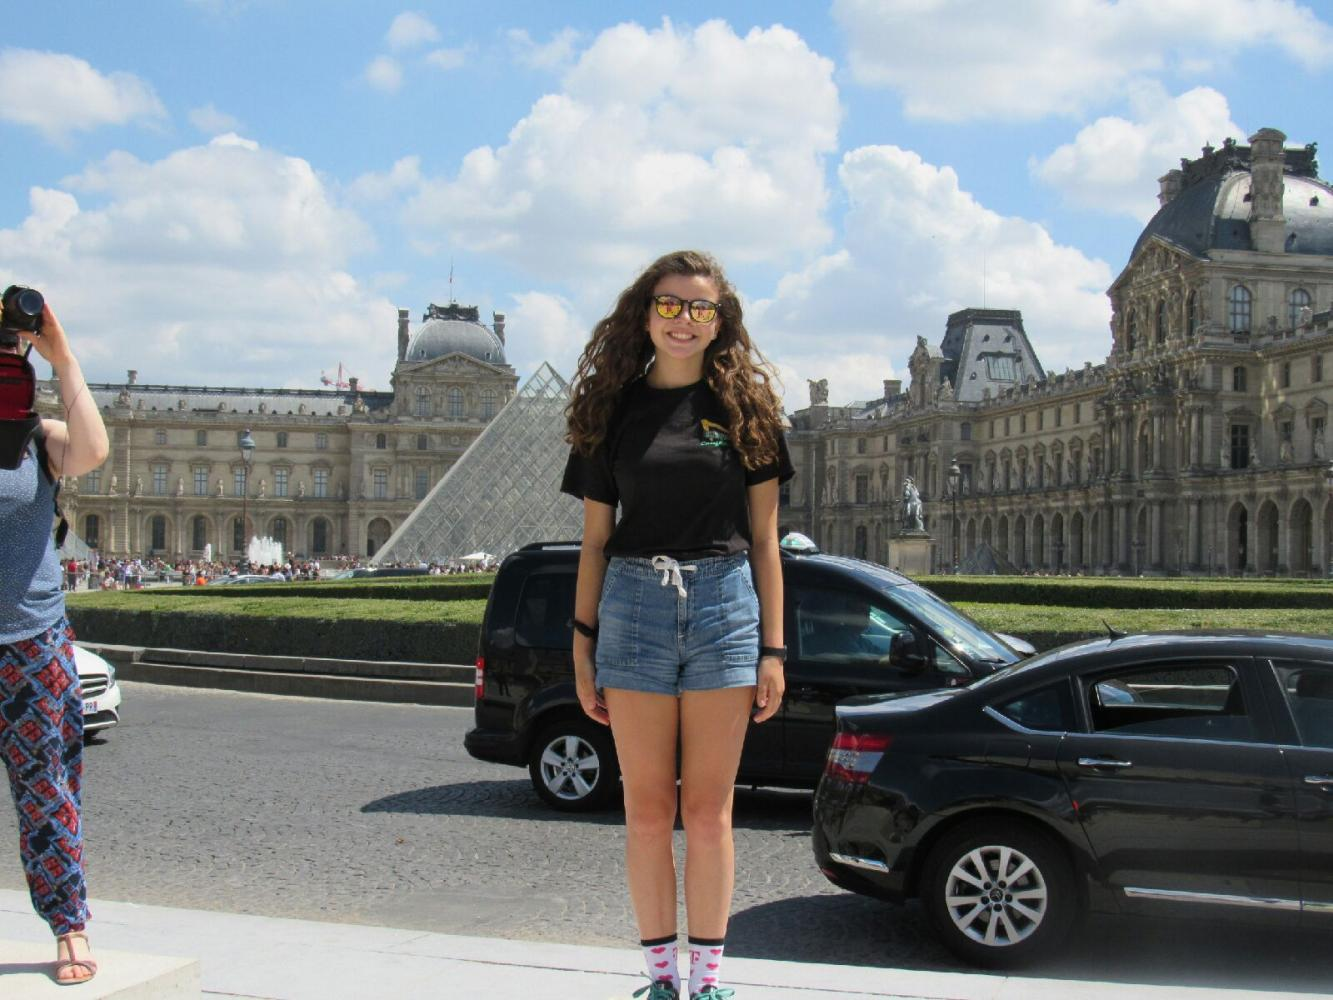 Emily Kostbade's experience in France teaches valuable lessons